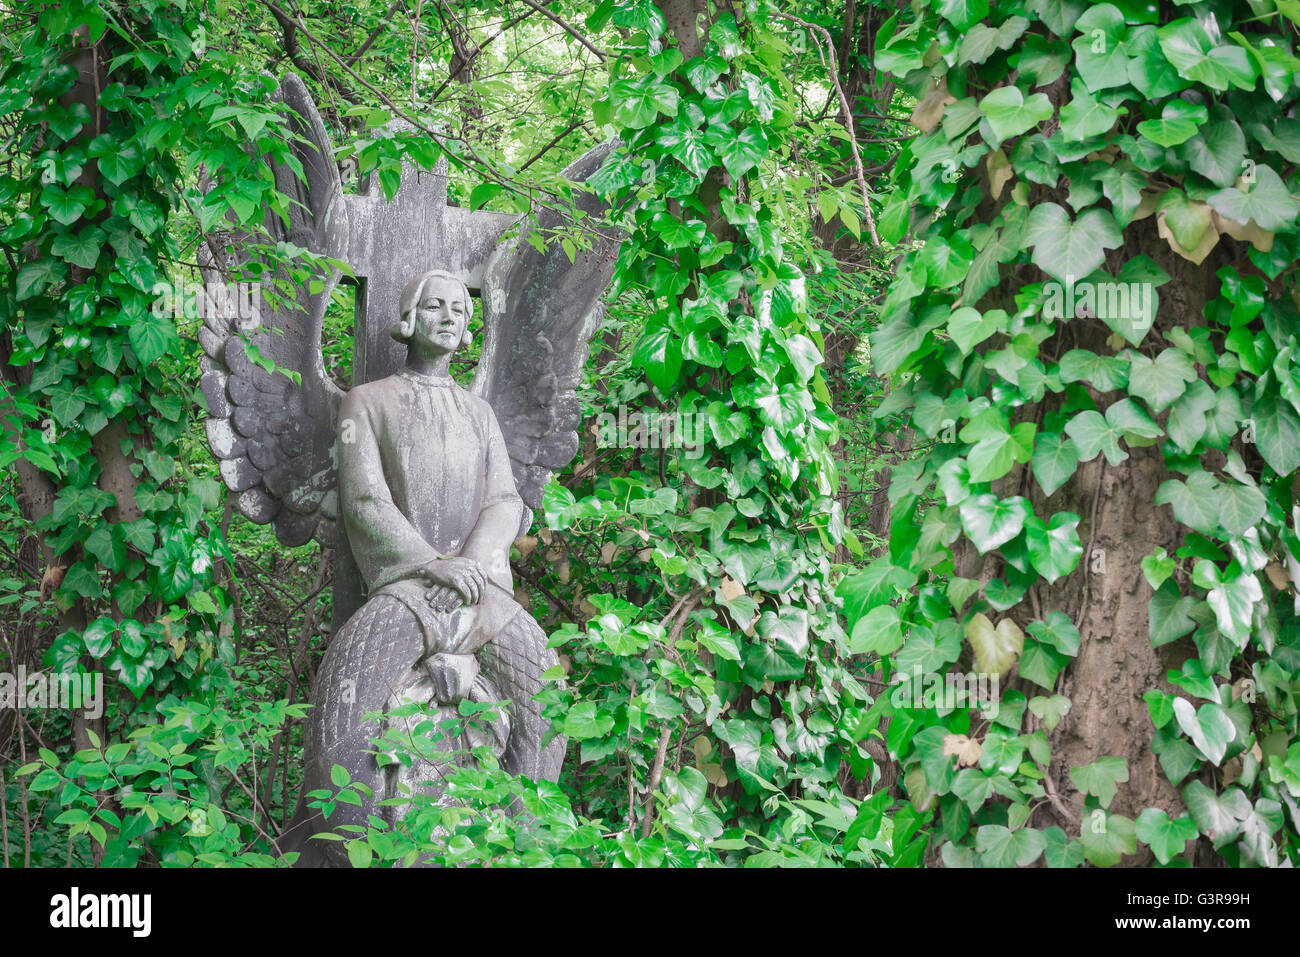 Budapest kerepesi, a stone angel that forms part of a grave overgrown by ivy in the Kerepesi Cemetery in Budapest, - Stock Image